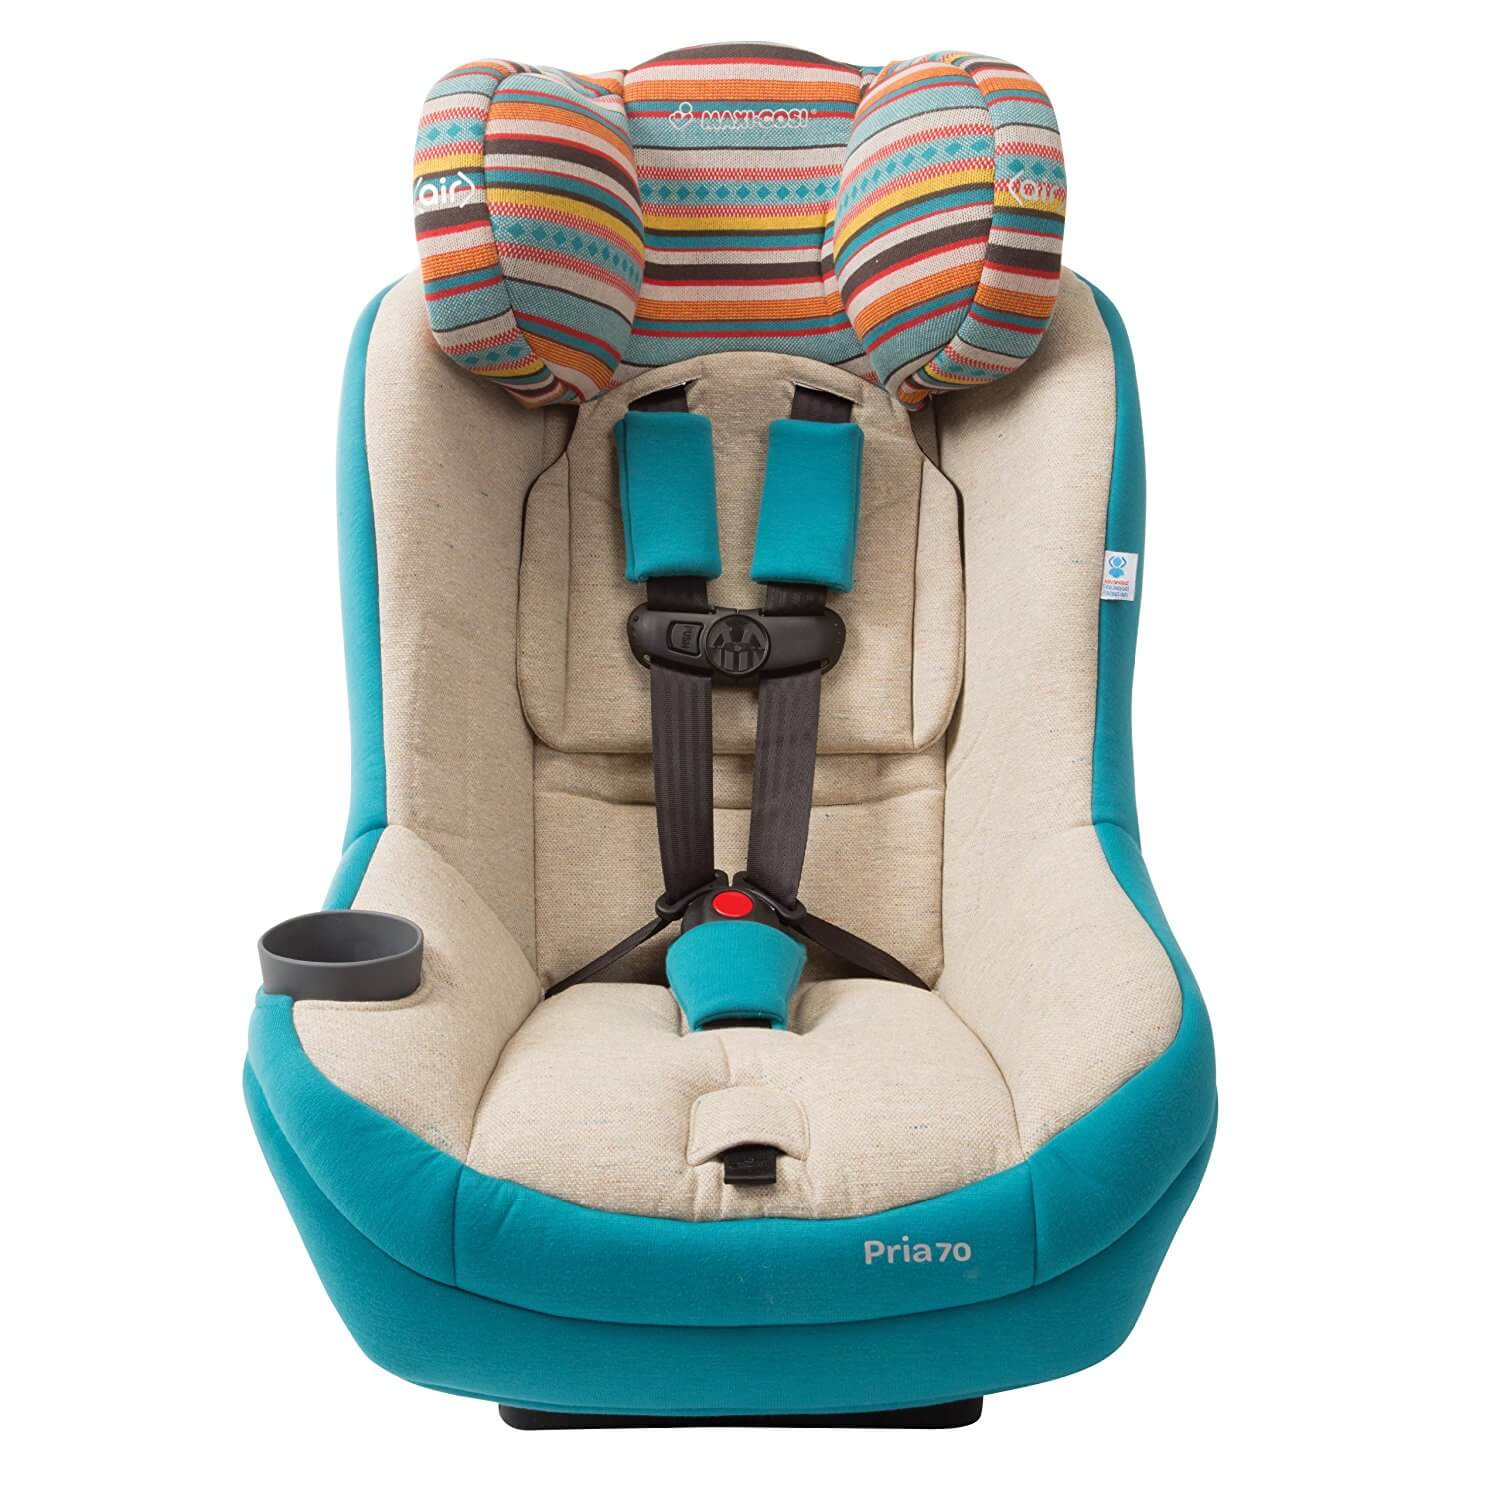 The Safety Of Your Child Is Utmost Importance To Maxi Cosi This Why Pria 70 Car Seat Was Made Be Highly Durable And Safe